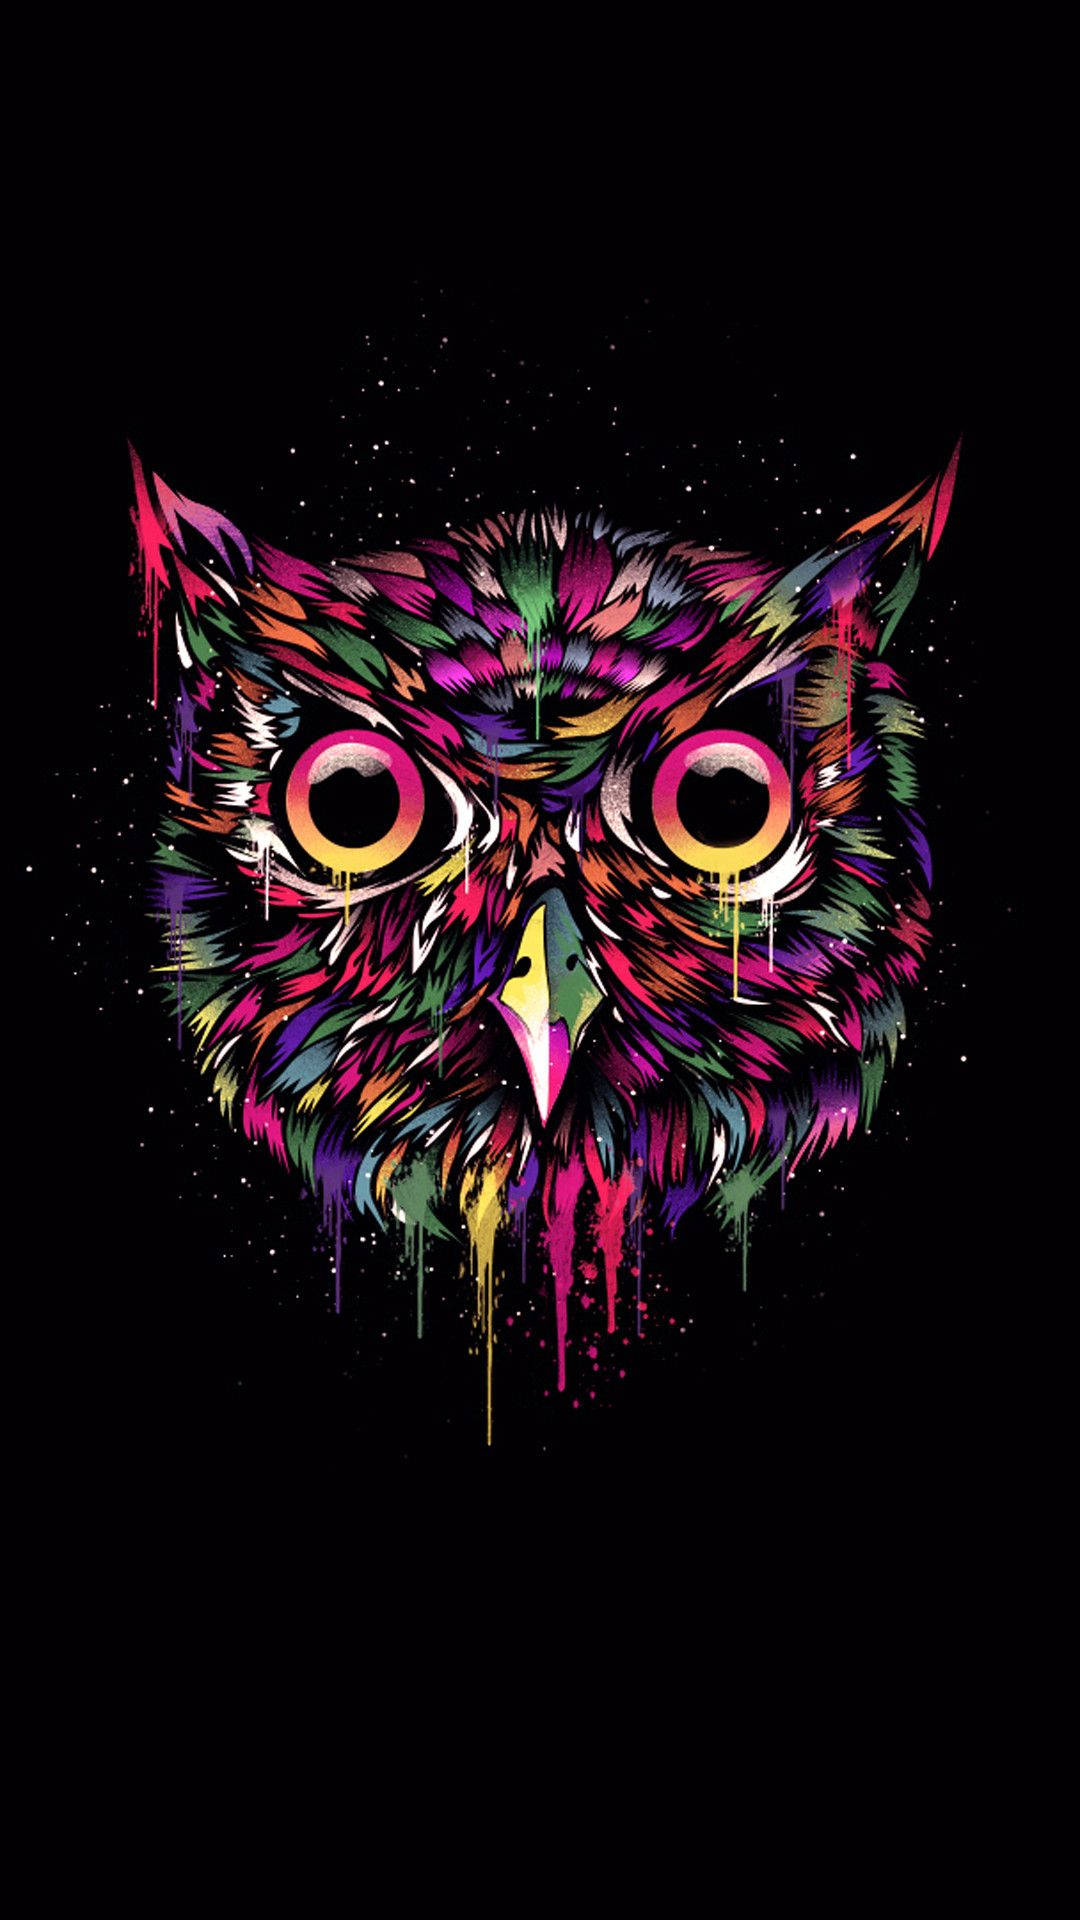 1080x1920 76+ Owl Iphone Wallpapers on WallpaperPlay